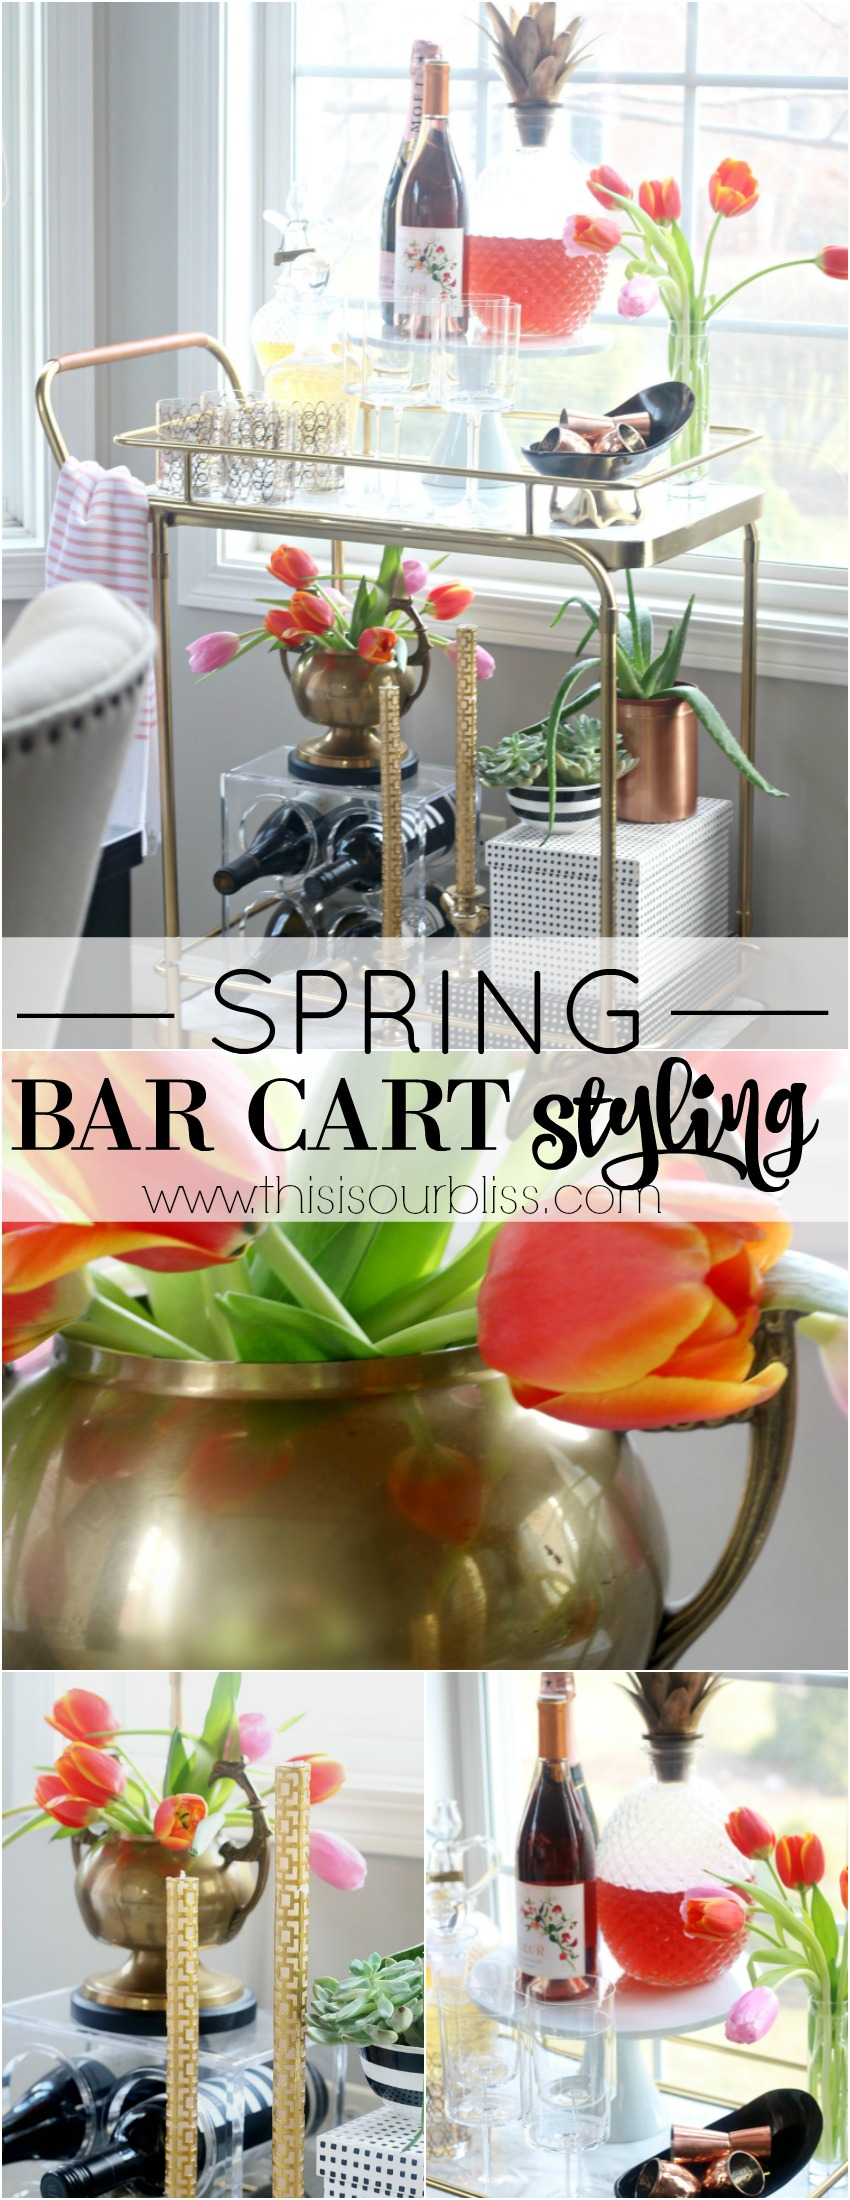 How to style your bar cart for Spring! | This is our Bliss